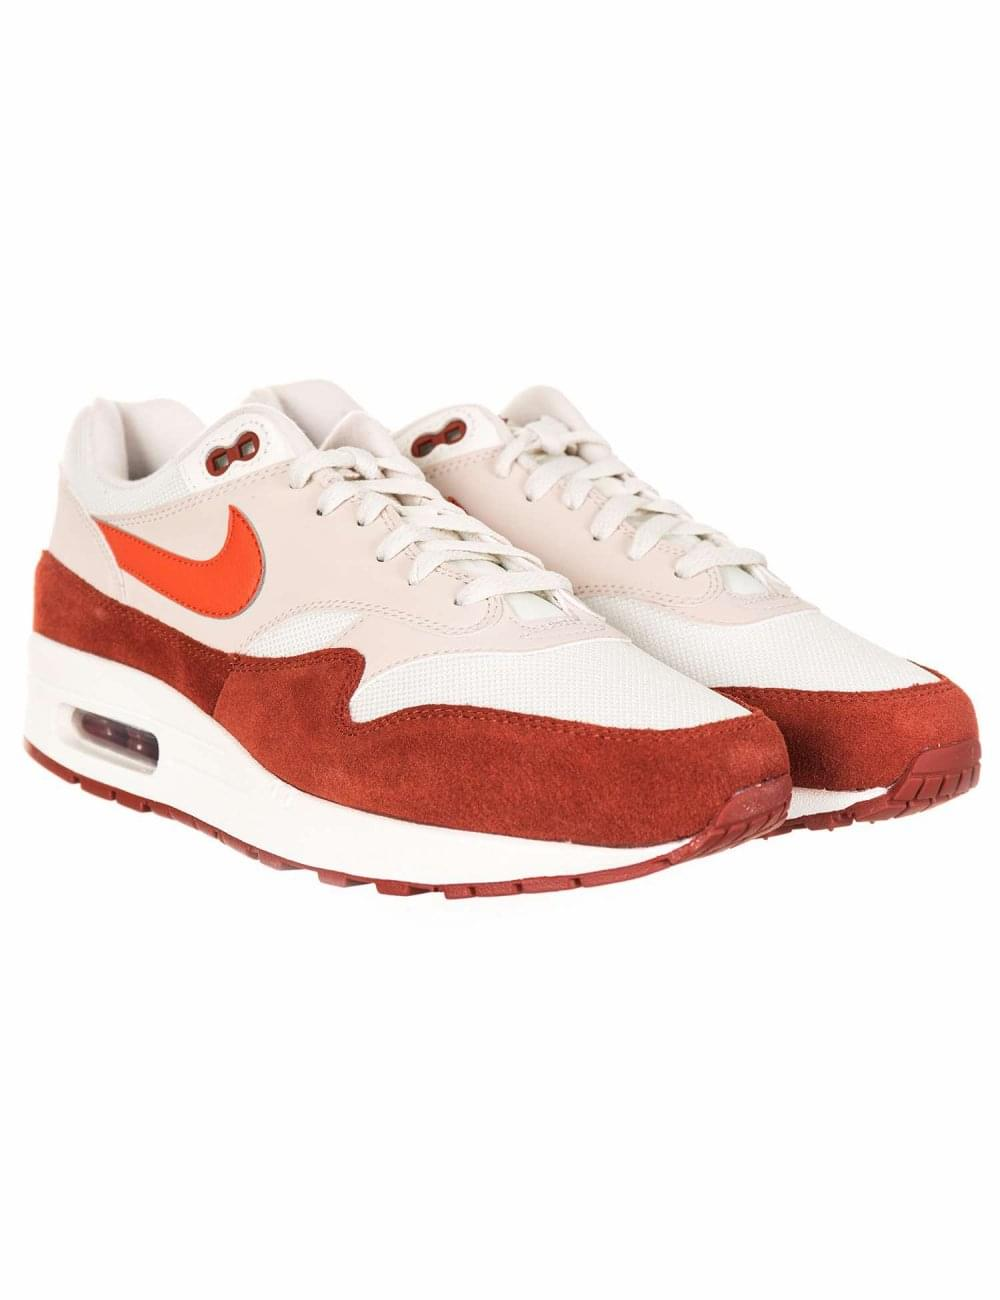 d2cfa8a38a Nike Air Max 1 Trainers - Sail/Vintage Coral/Mars - Footwear from ...